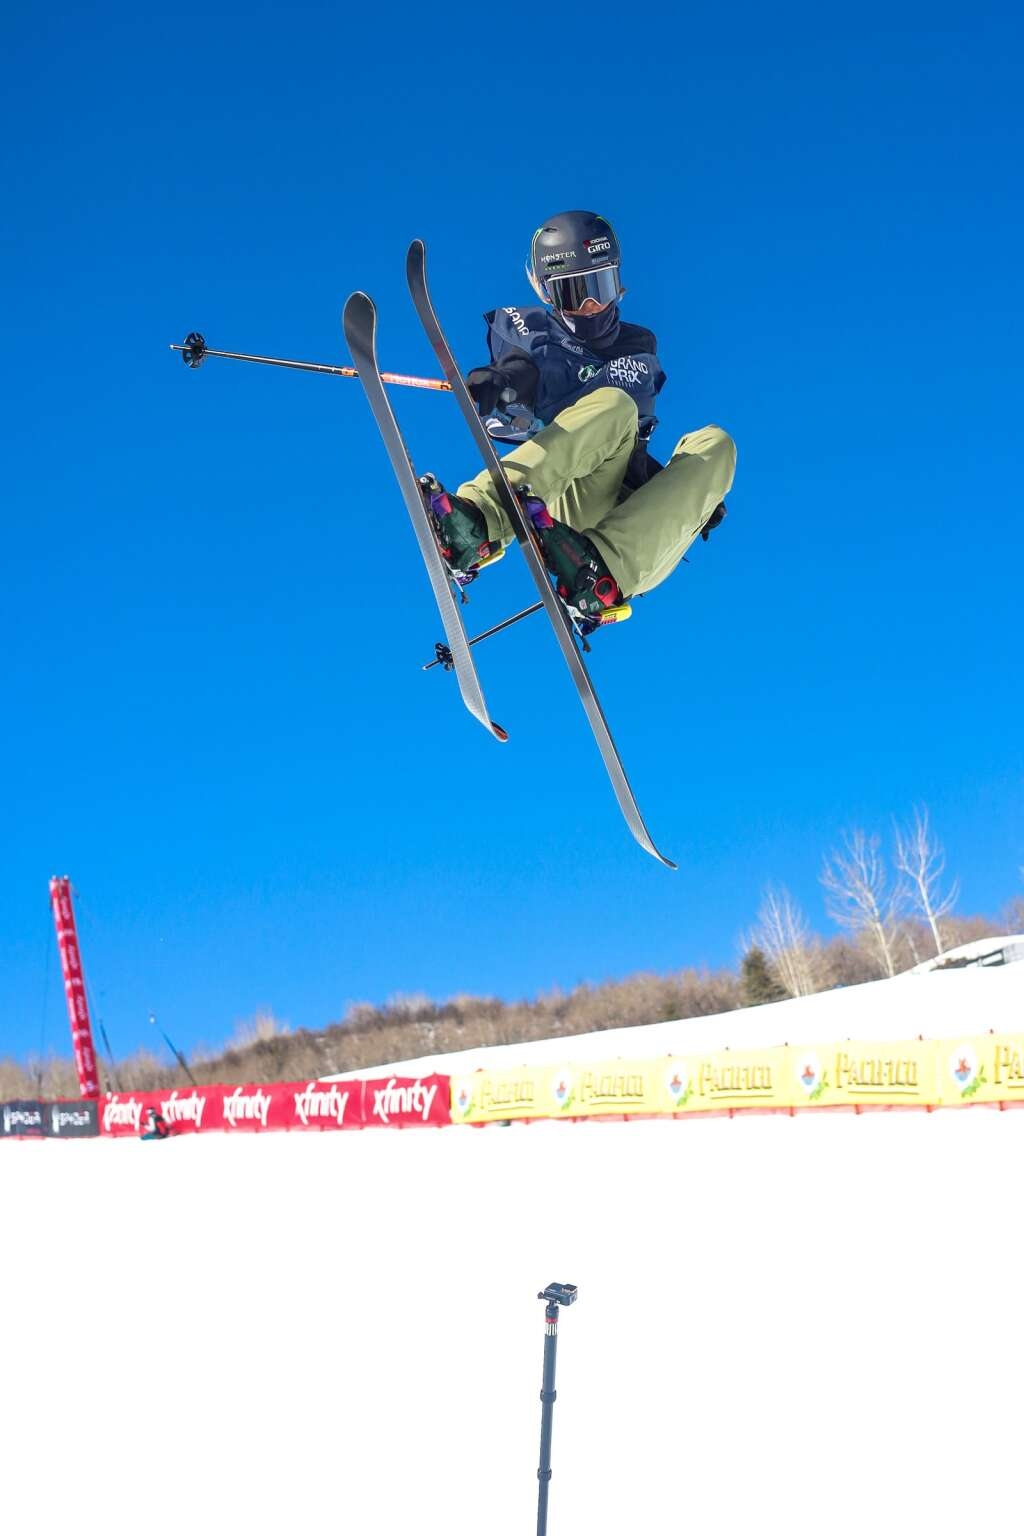 American Brita Sigourney competes in the women's freeski halfpipe qualifier of the Land Rover U.S. Grand Prix and World Cup on Friday, March 19, 2021, at Buttermilk Ski Area in Aspen. Photo by Austin Colbert/The Aspen Times.